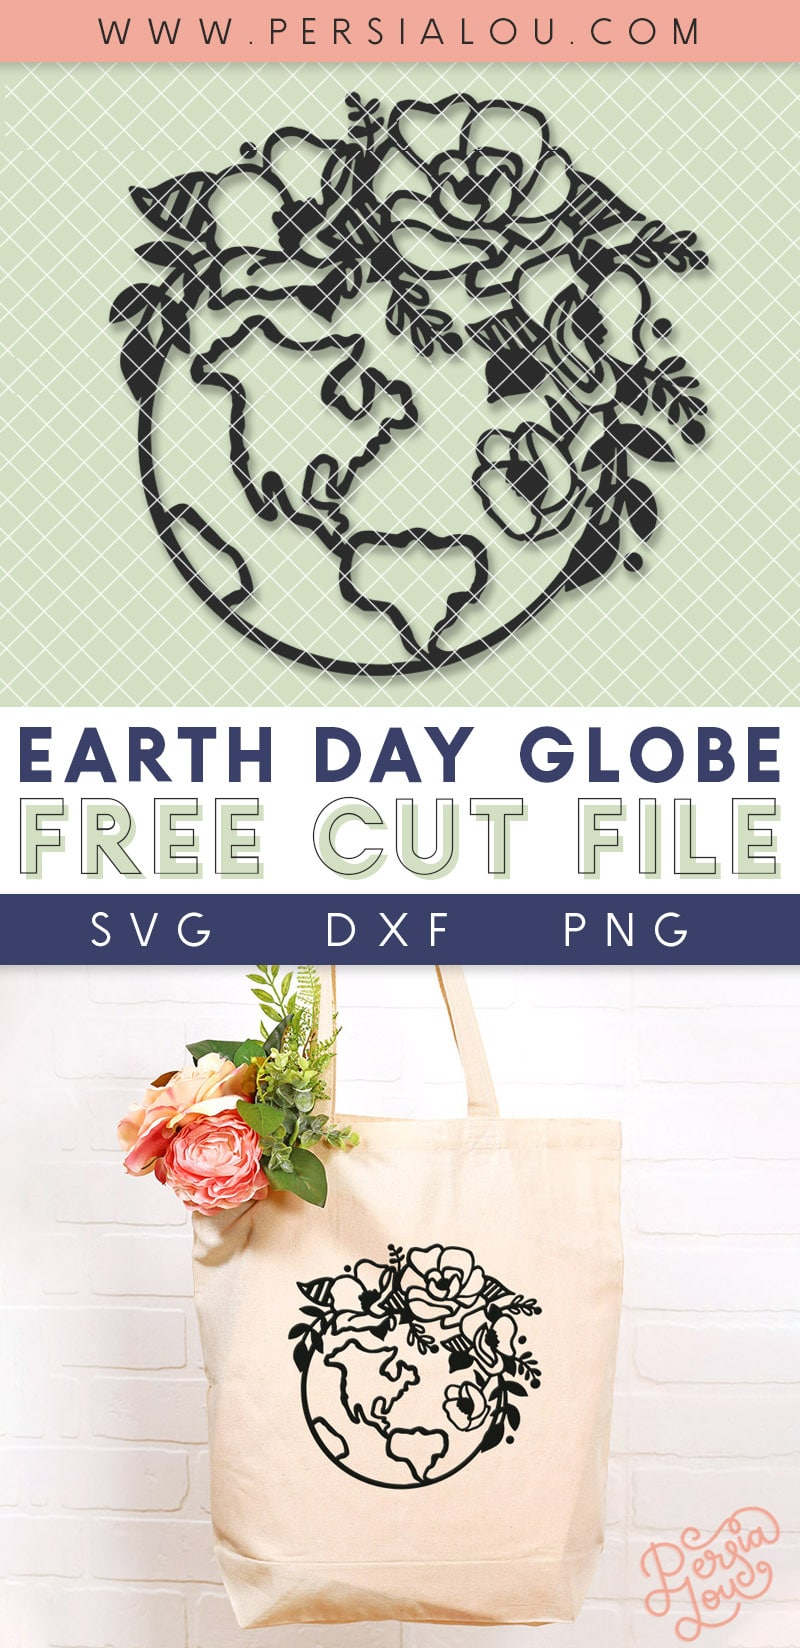 free earth day svg cut file drawing of the earth with flowers